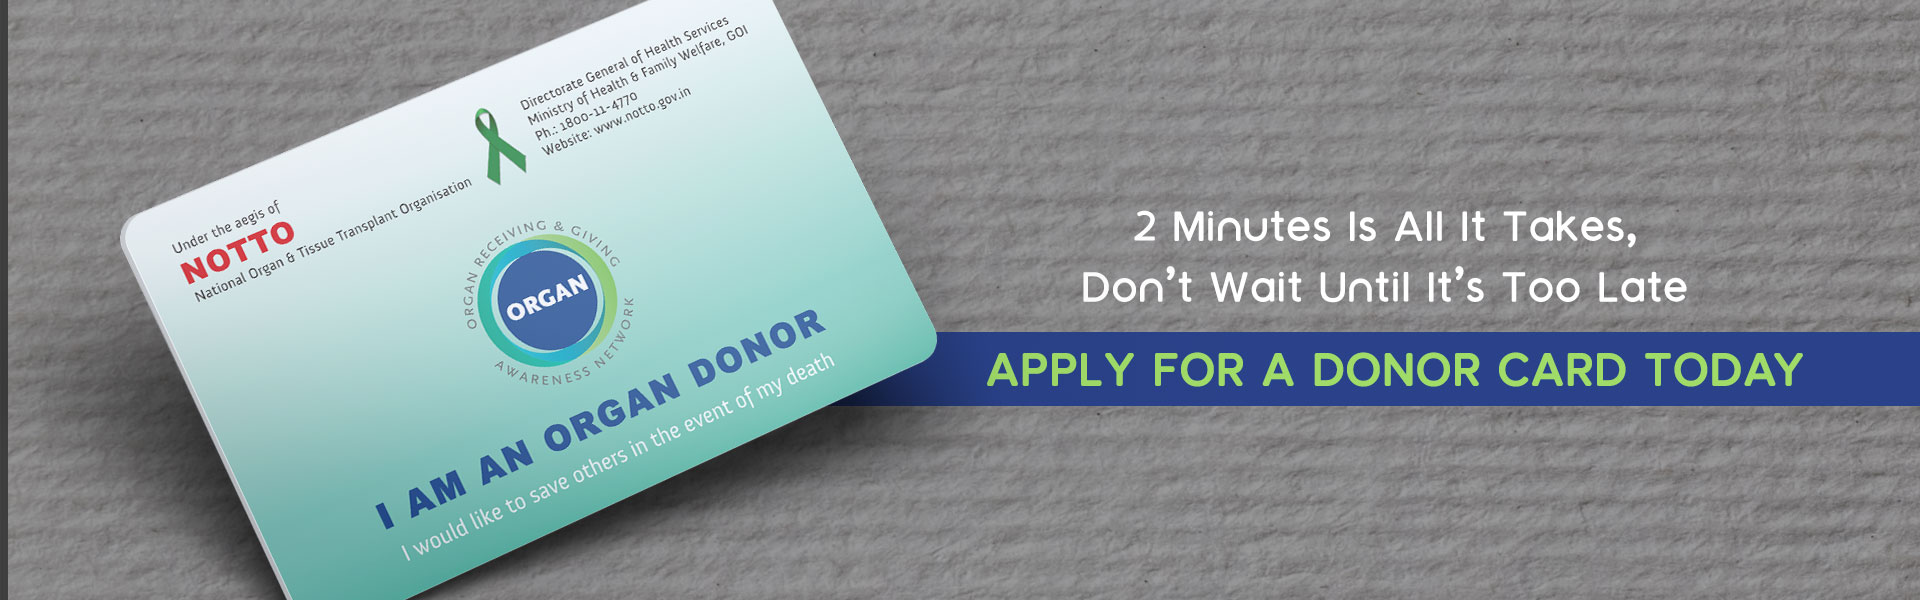 be an organ donor and claim your donor card